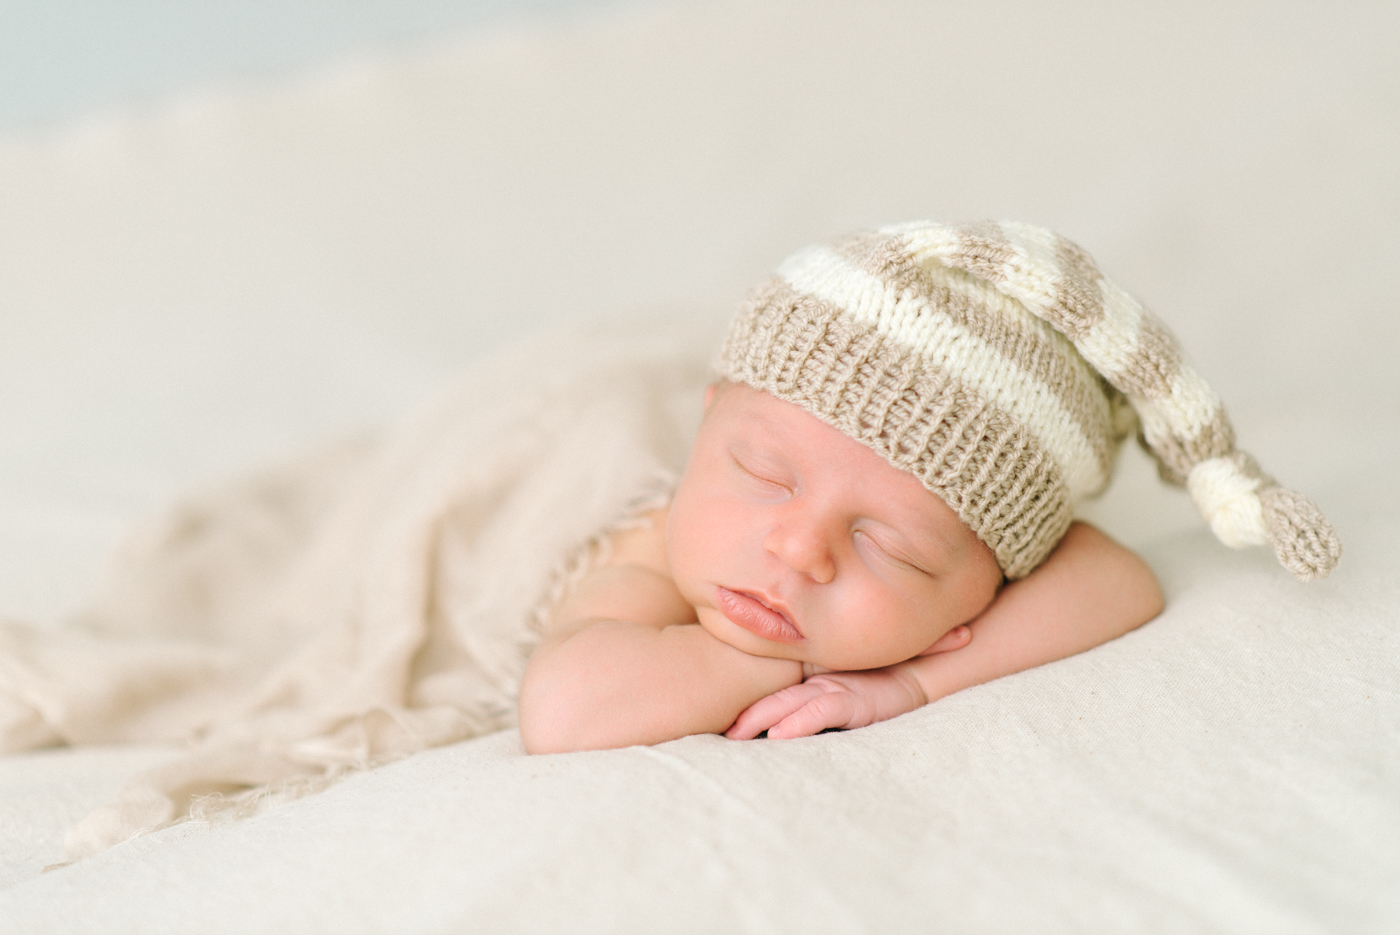 newborn-photographer-portland-oregon-knit-hat-stocking-cap-cream-sleeping-baby-boy-shelley-marie-photo